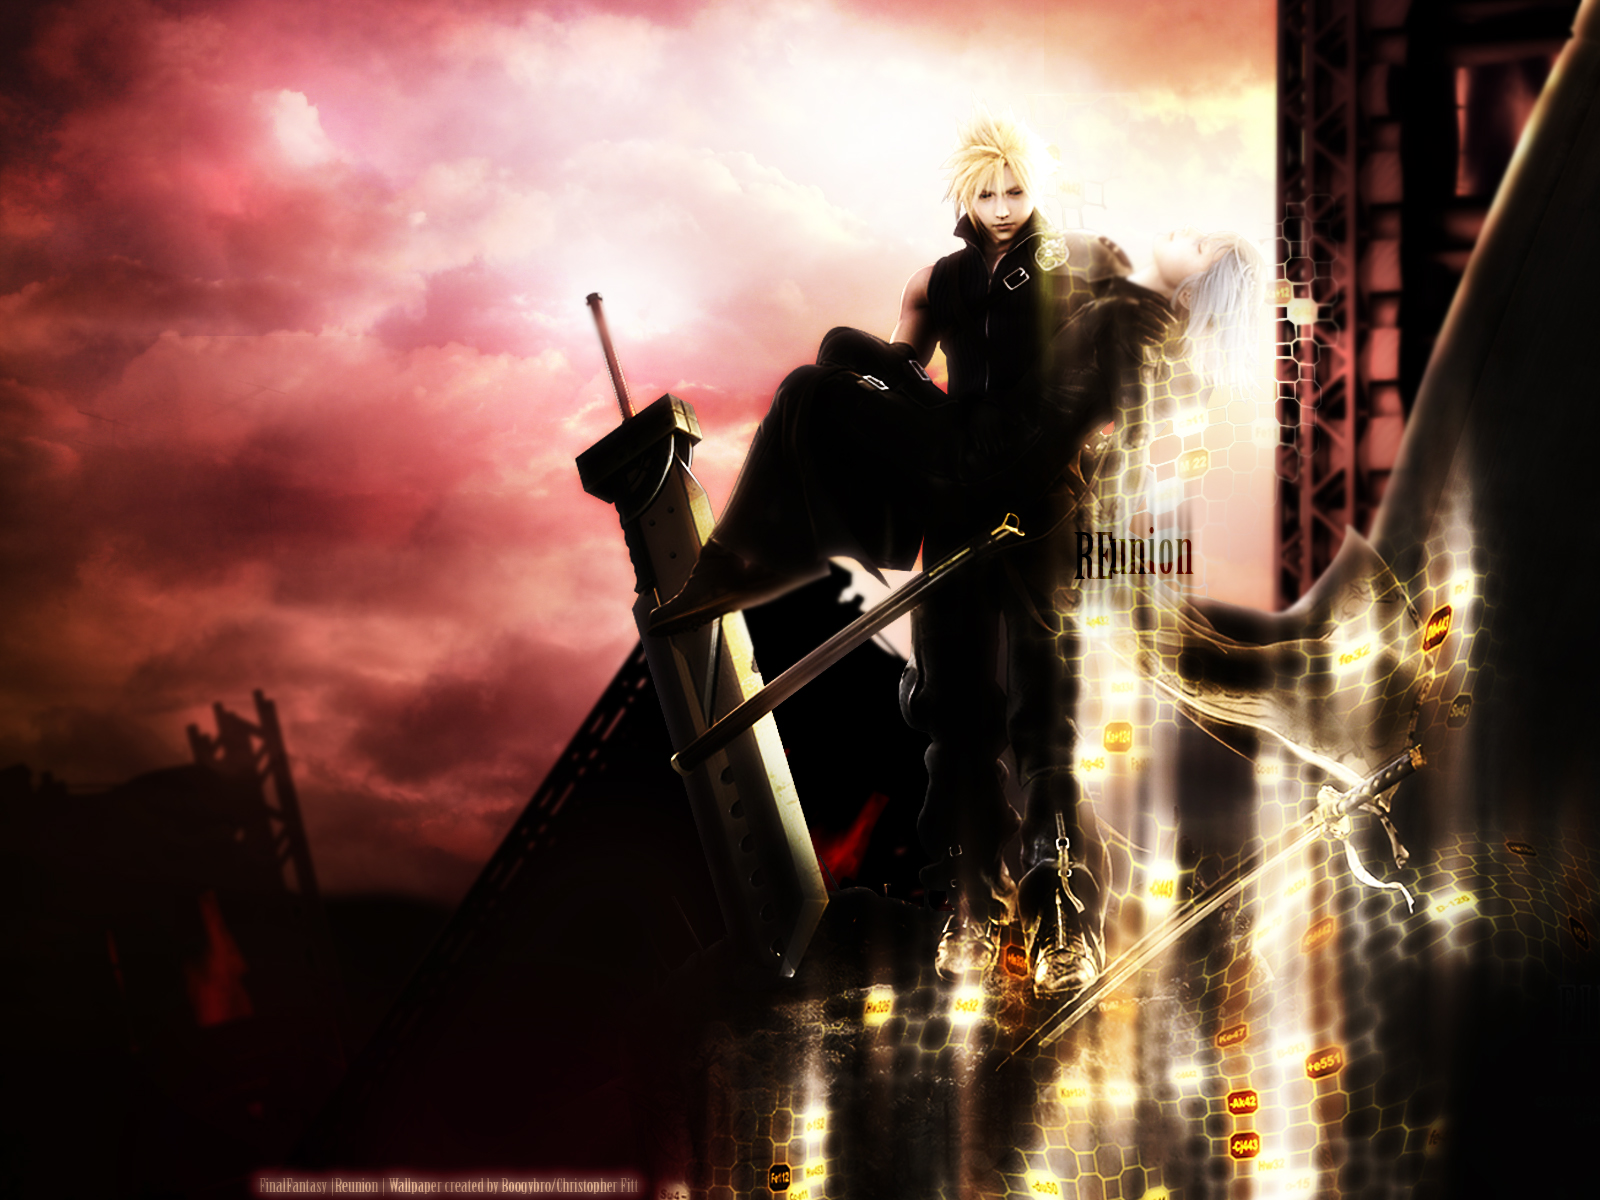 cloud_strife final_fantasy final_fantasy_vii final_fantasy_vii_advent_children kadaj